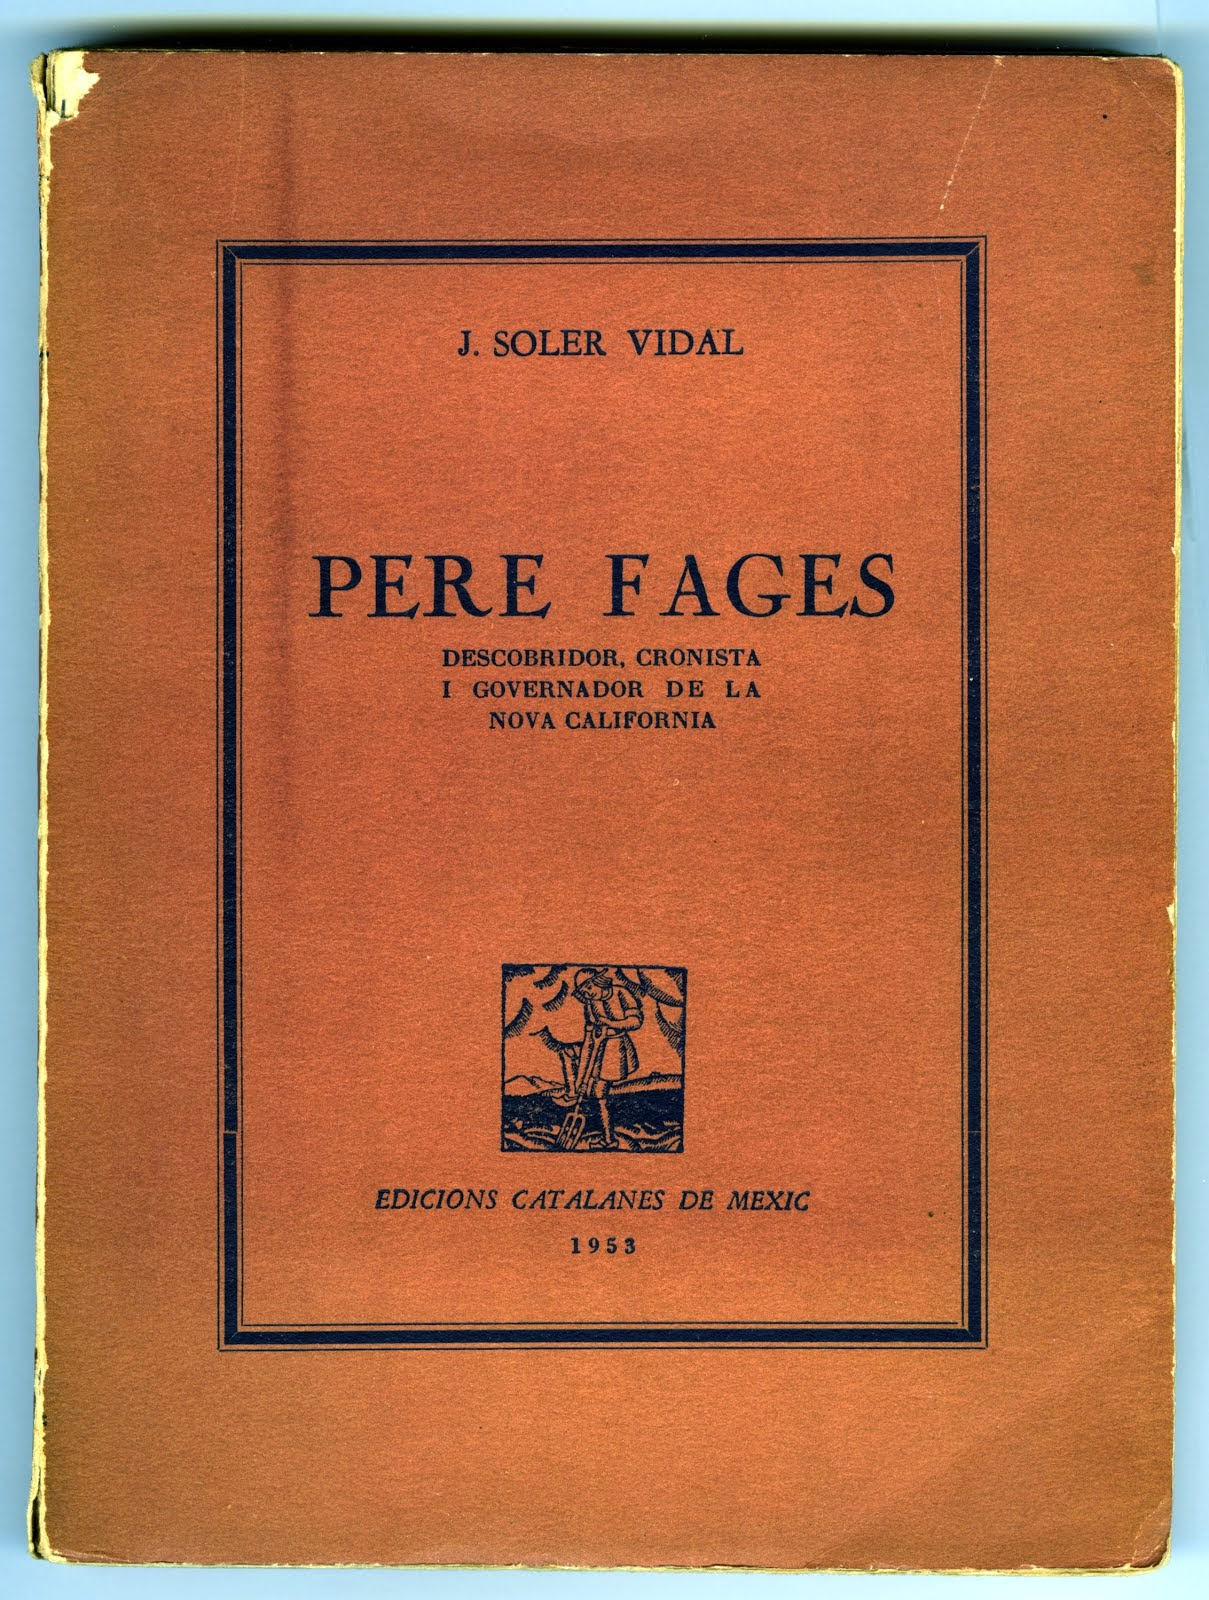 Pere Fages